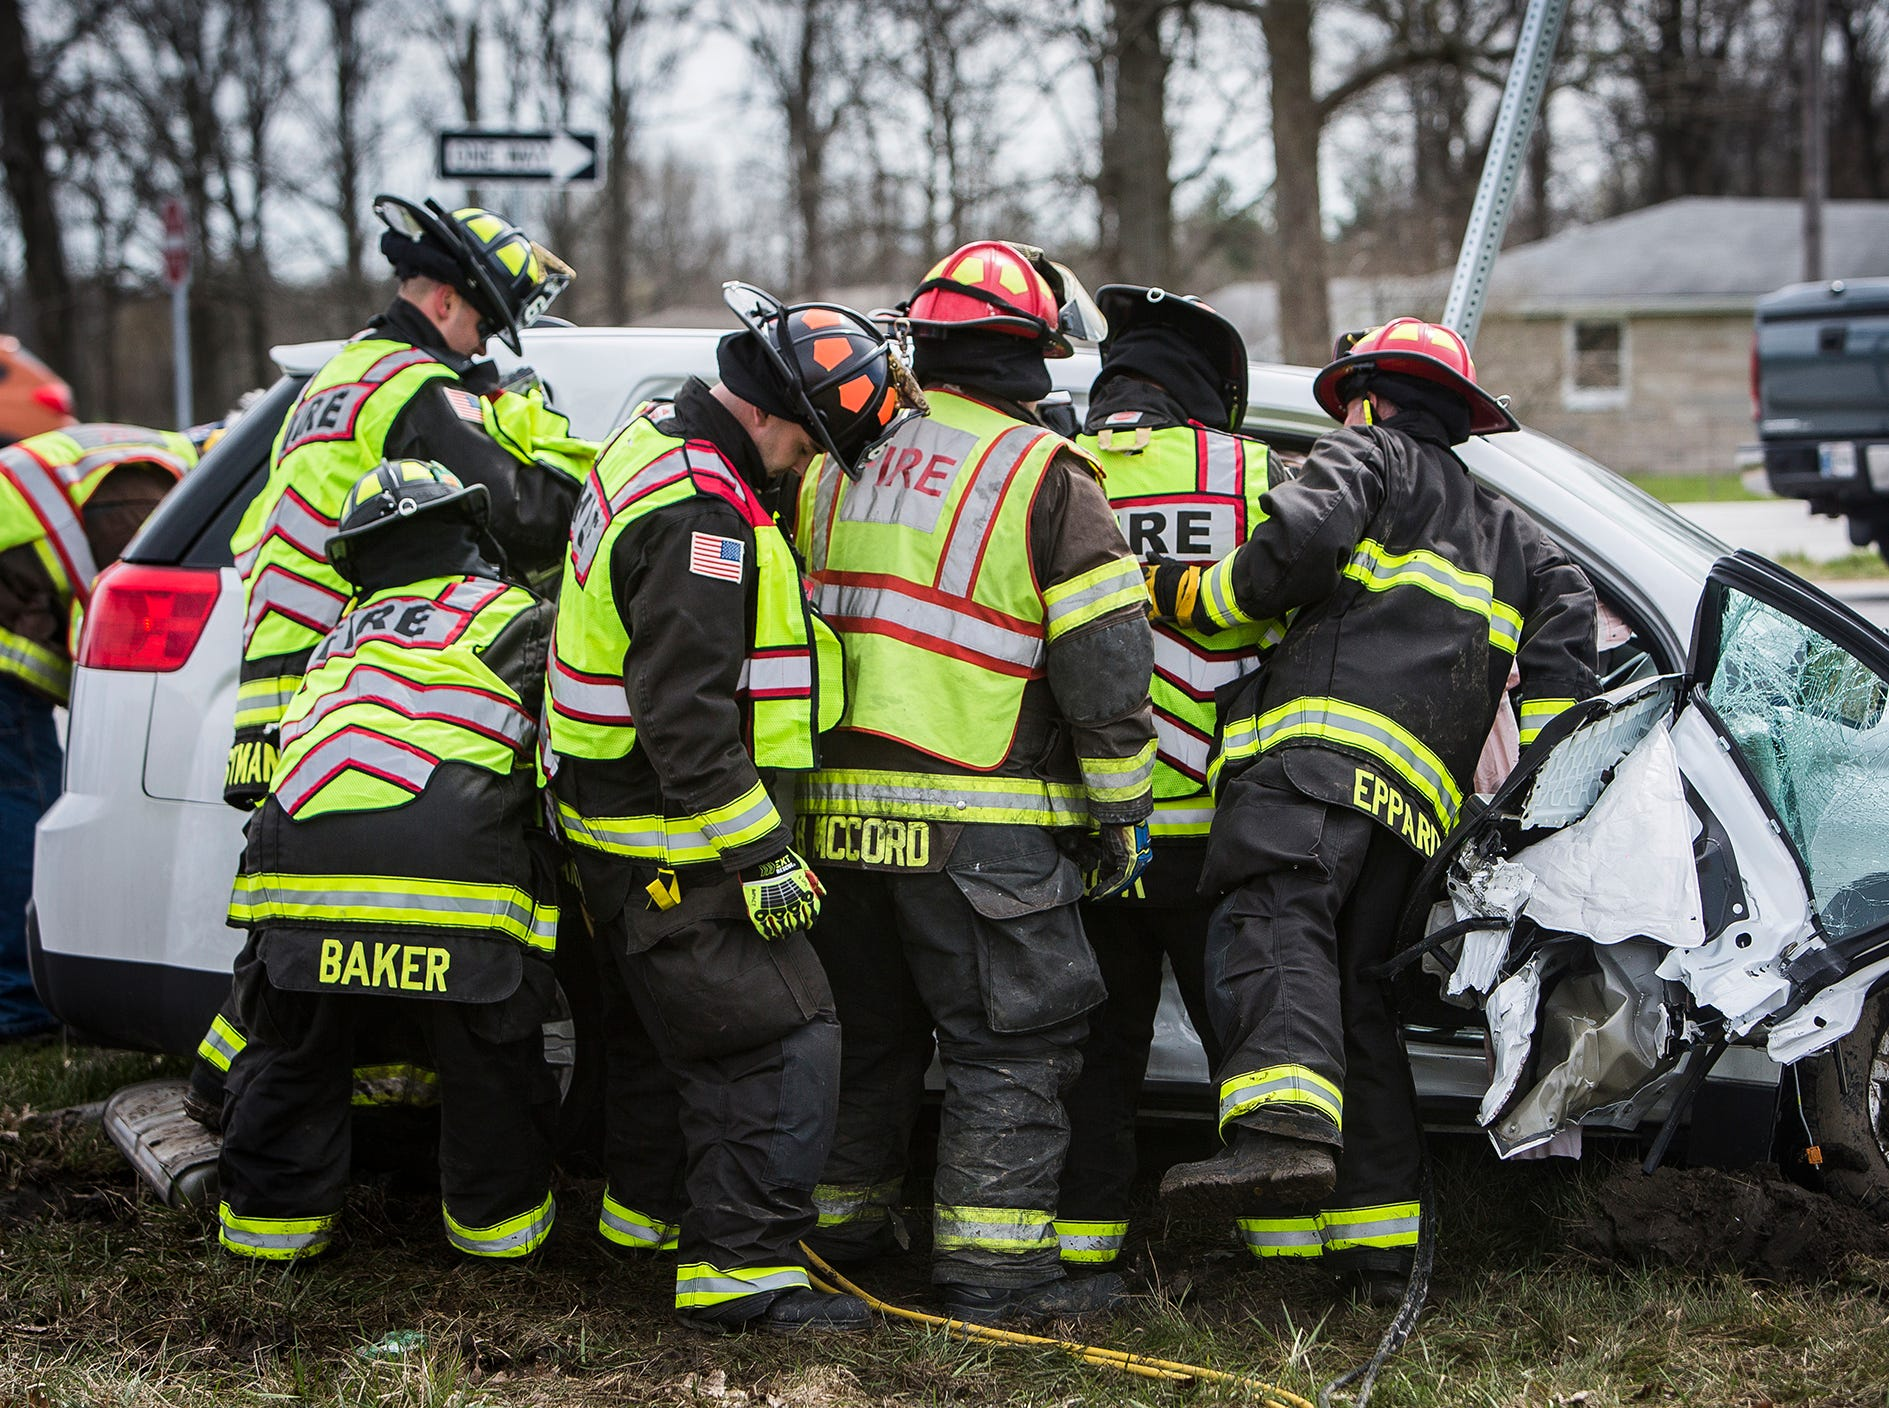 Two people were transported to IU Health Ball Memorial Hospital with non-life threatening injuries following a rollover wreck with entrapment at the intersection of County Road 600 W and IN-332 at around 3 p.m. Friday. According to police the SUV, occupied by three people, was turning left onto CR 600 W. when it was t-boned. Firefighters used the jaws of life to extricate two injured passengers.